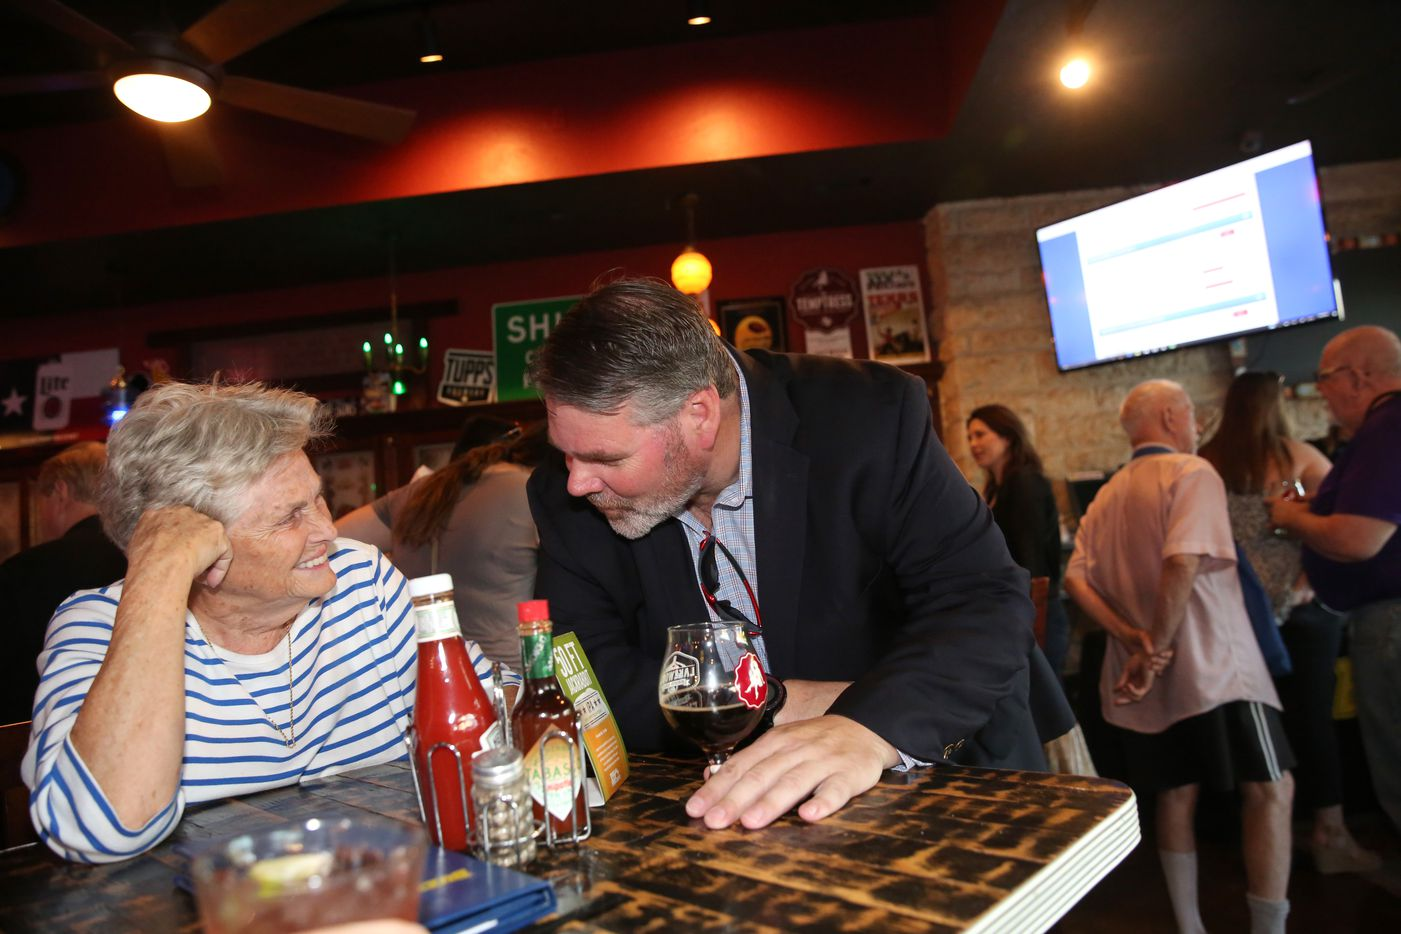 Dallas district 14 city council  candidate Matt Wood talks to former State Rep. Harryette Ehrhardt during an election watch party at Buzzbrews in Dallas on Saturday, May 6, 2017. Wood is running against incumbent Philip T. Kingston and Kim Welch.